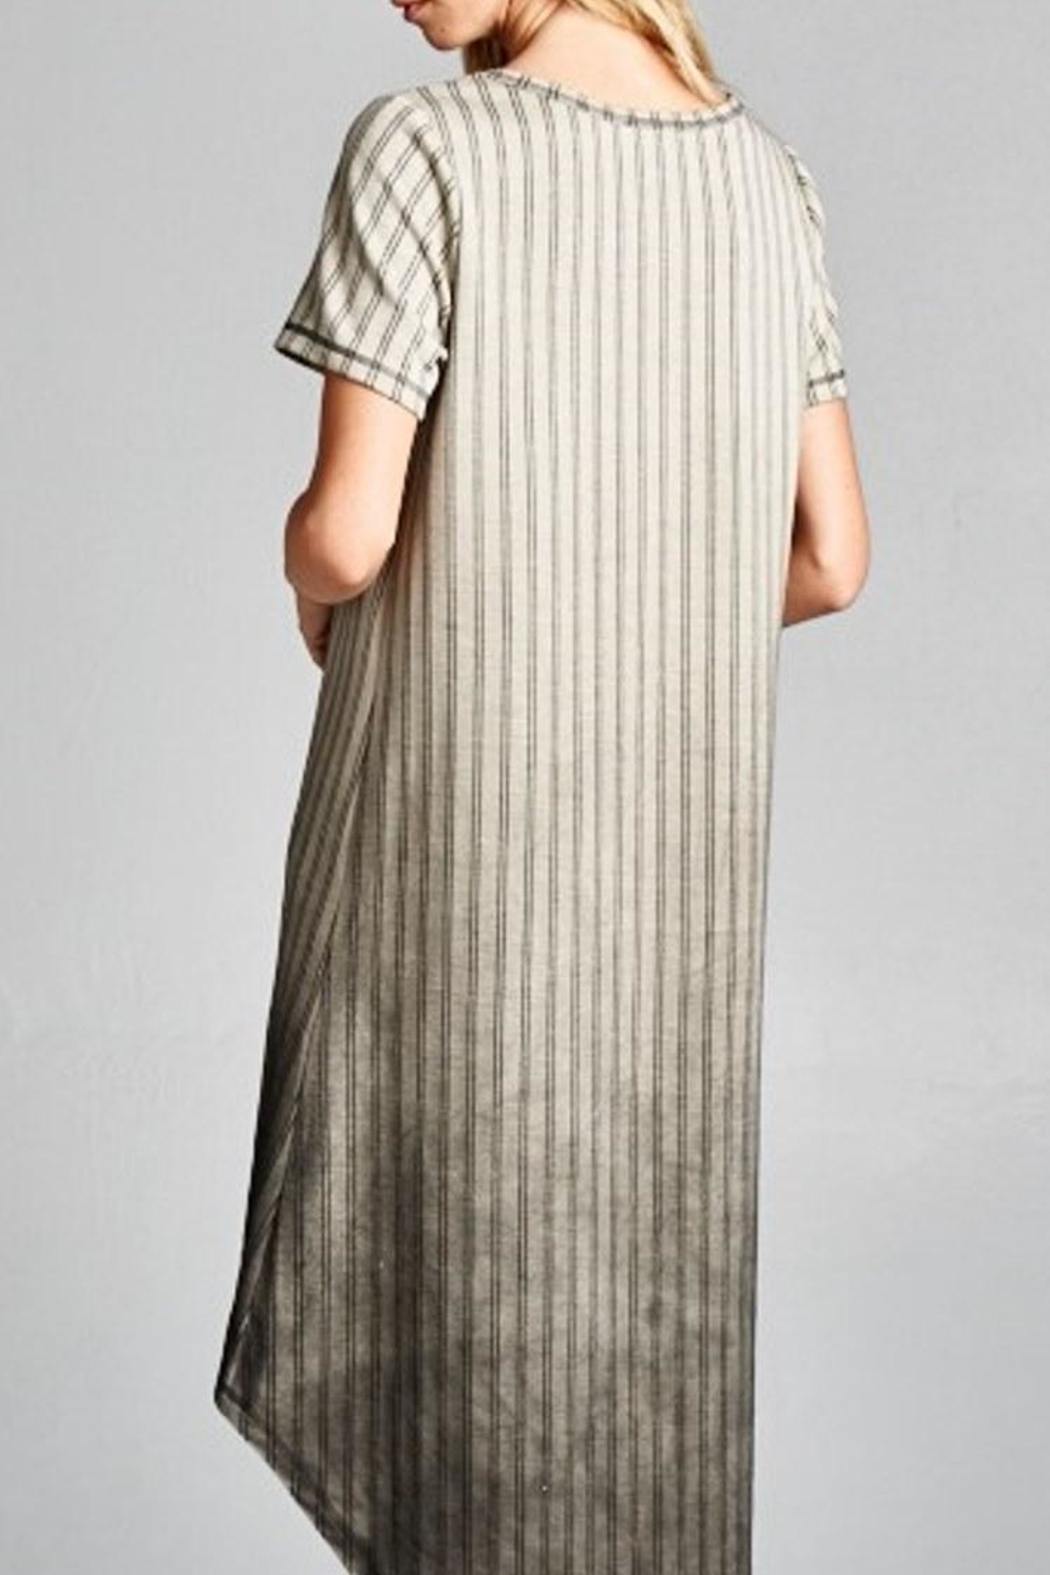 Oddi Striped Ombre Dress - Side Cropped Image